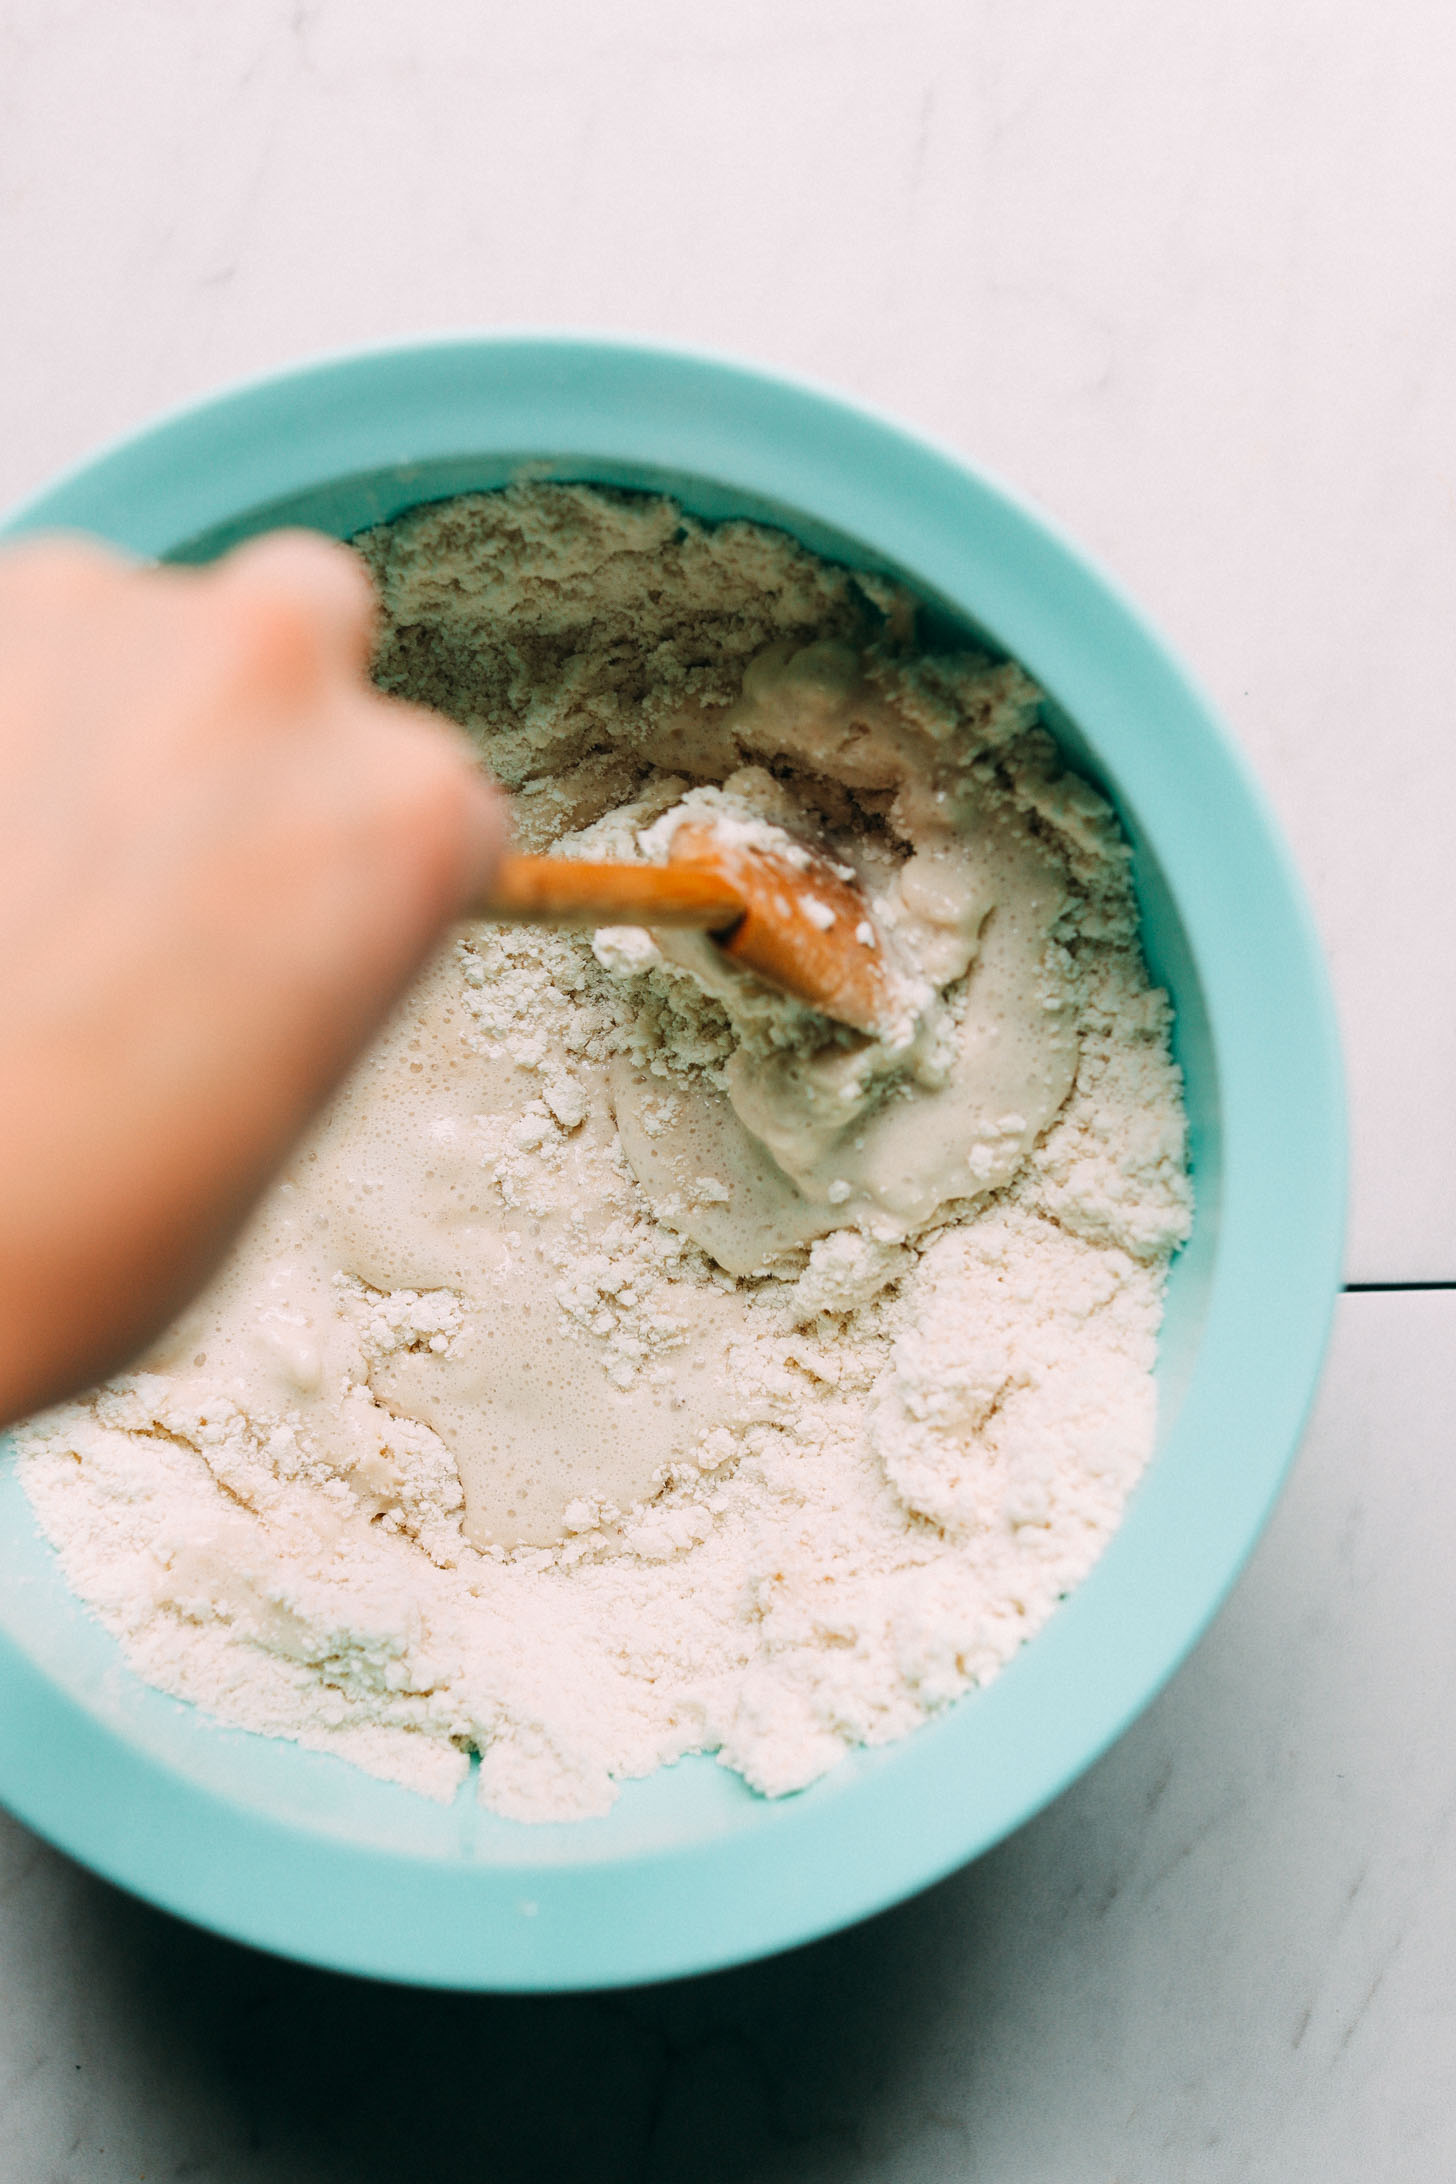 Stirring wet ingredients into dry ingredients with a wooden spoon